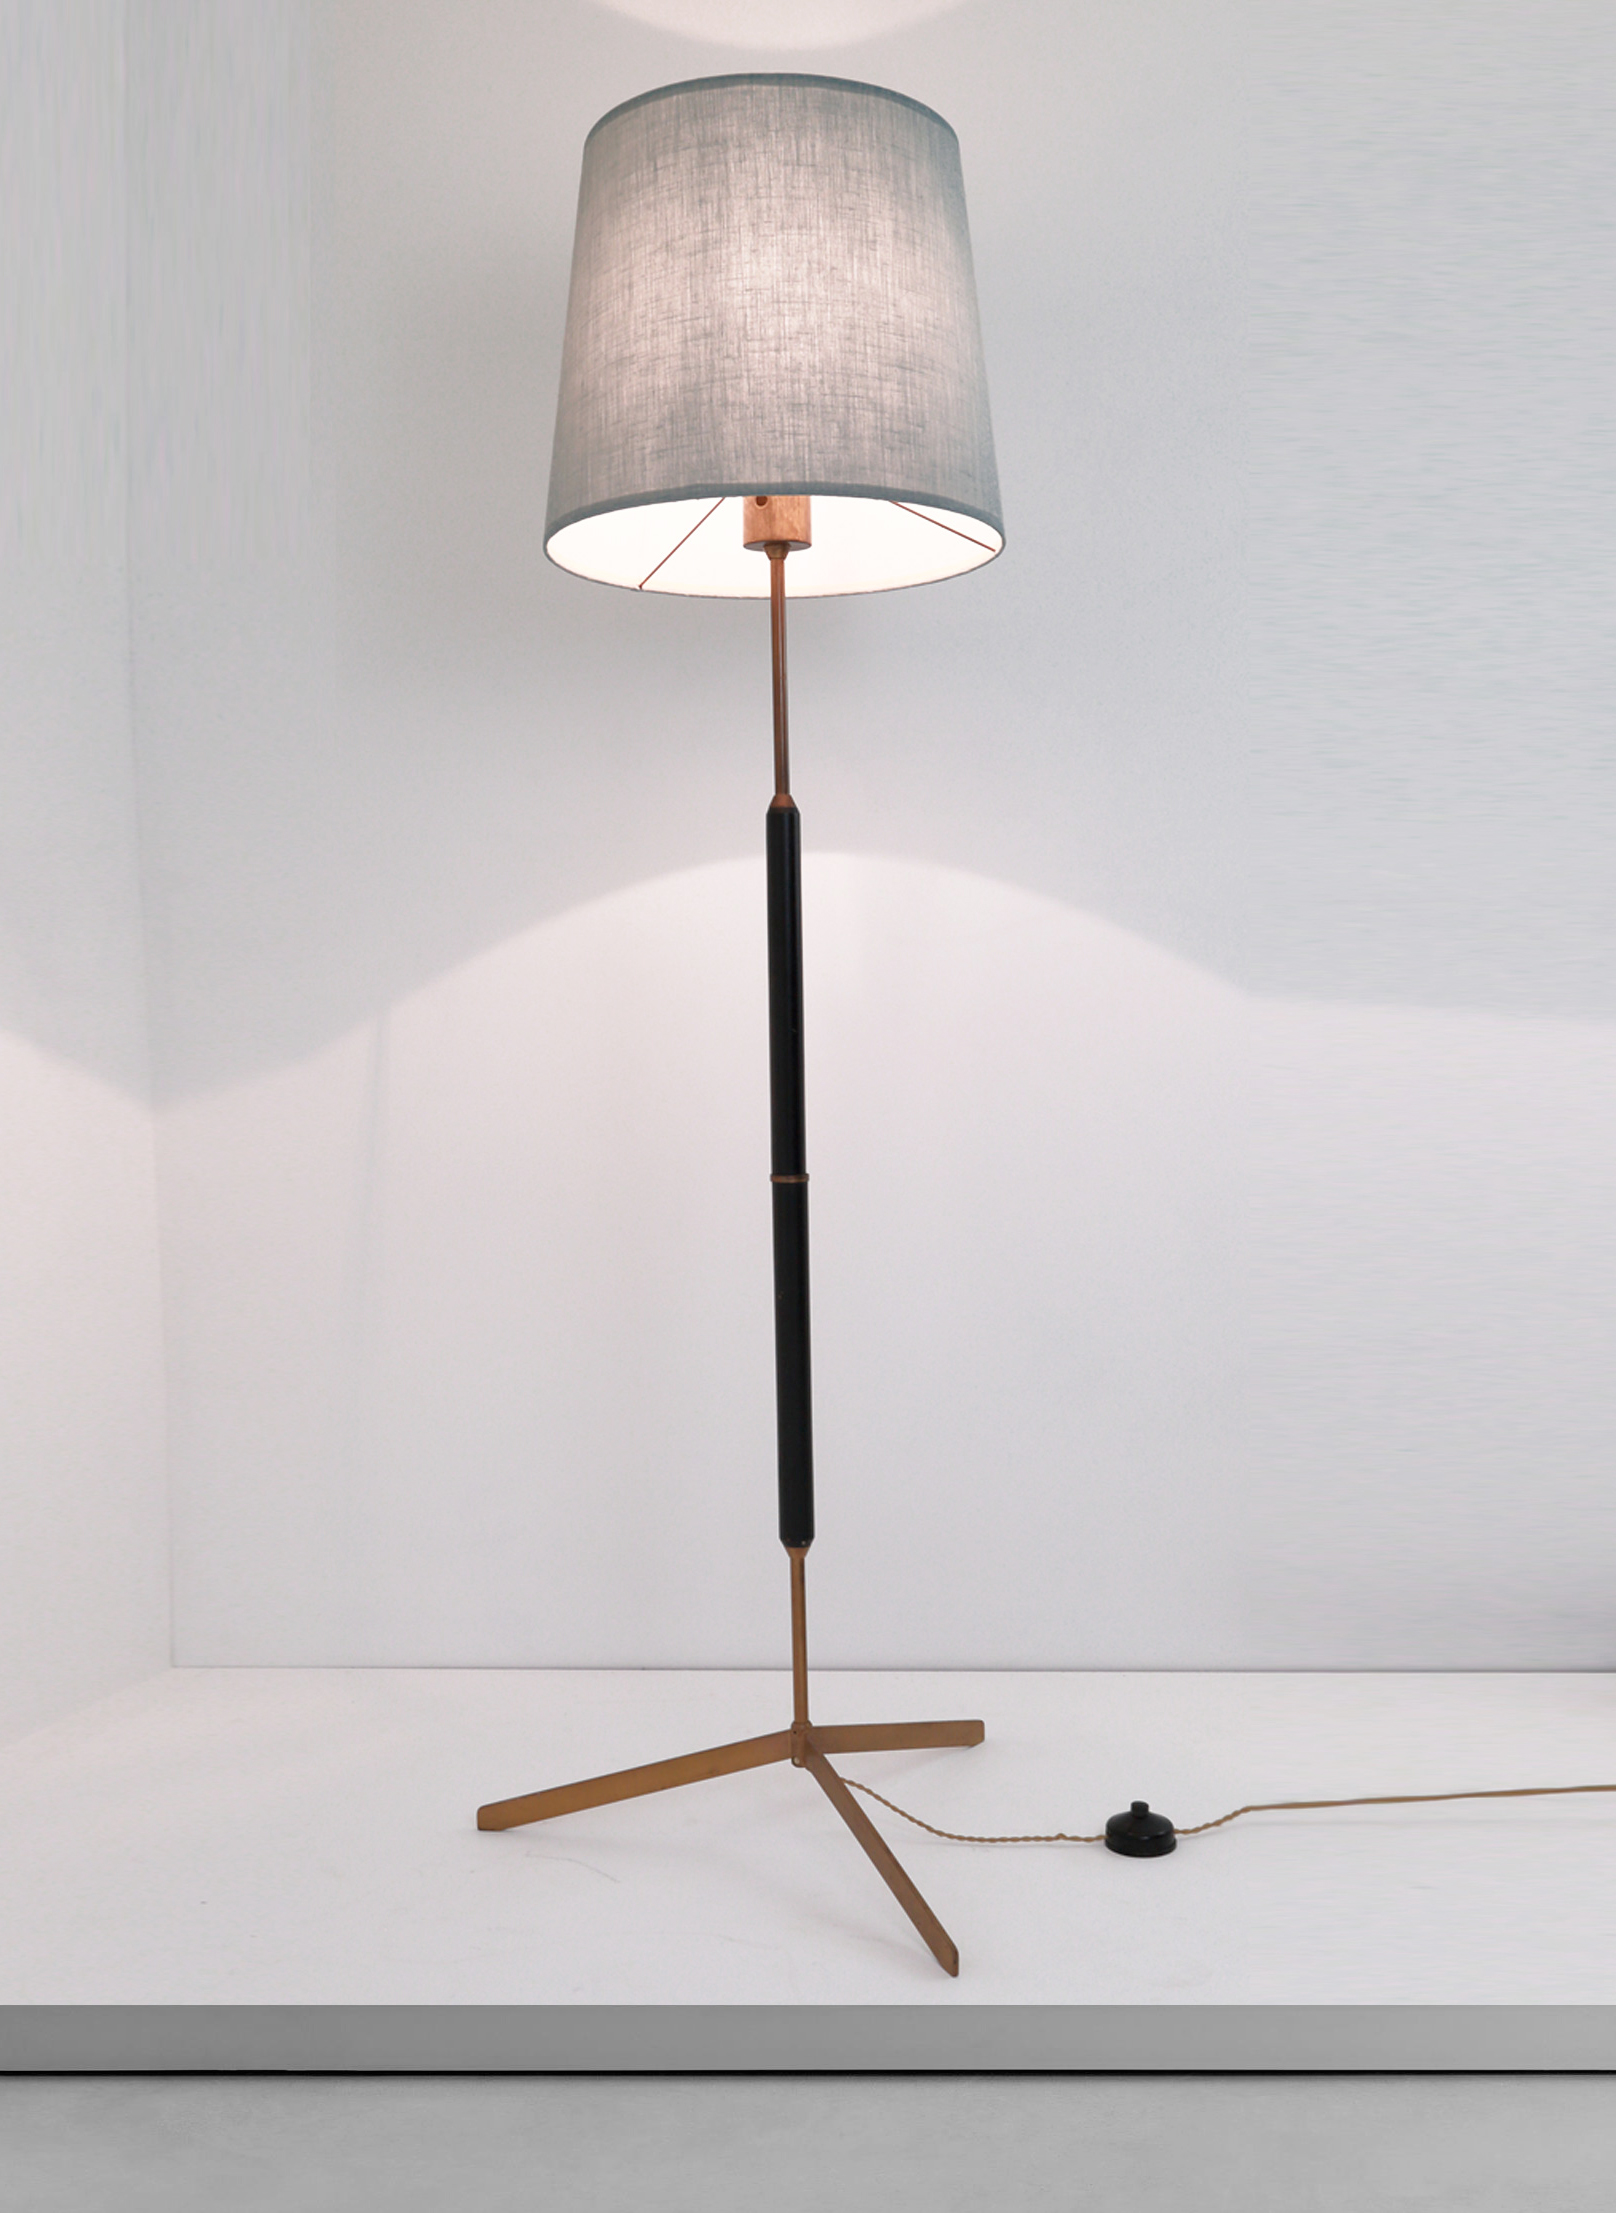 Bergbom 1950s swedish floor lamp cupio gallery for 1950 floor lamp